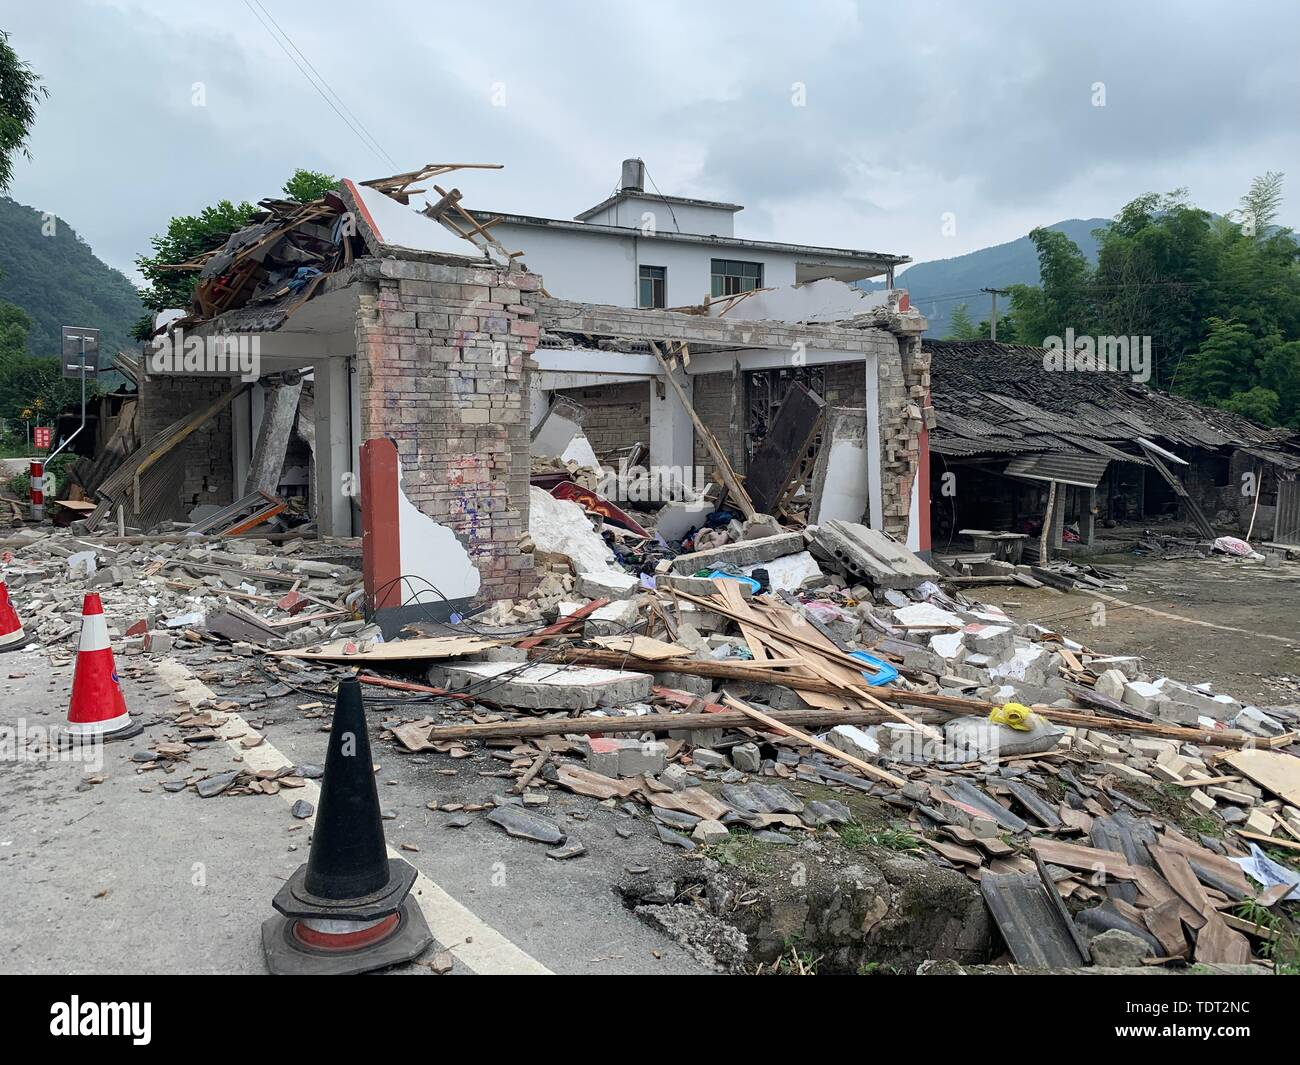 Changning. 18th June, 2019. Photo taken on June 18, 2019 shows collapsed houses at Putao Village in Shuanghe Town, Changning County of Yibin City, southwest China's Sichuan Province. Twelve people died and another 125 were injured after a 6.0-magnitude earthquake hit Changning County Monday night, China's Ministry of Emergency Management said on Tuesday. Credit: Chen Di/Xinhua/Alamy Live News - Stock Image